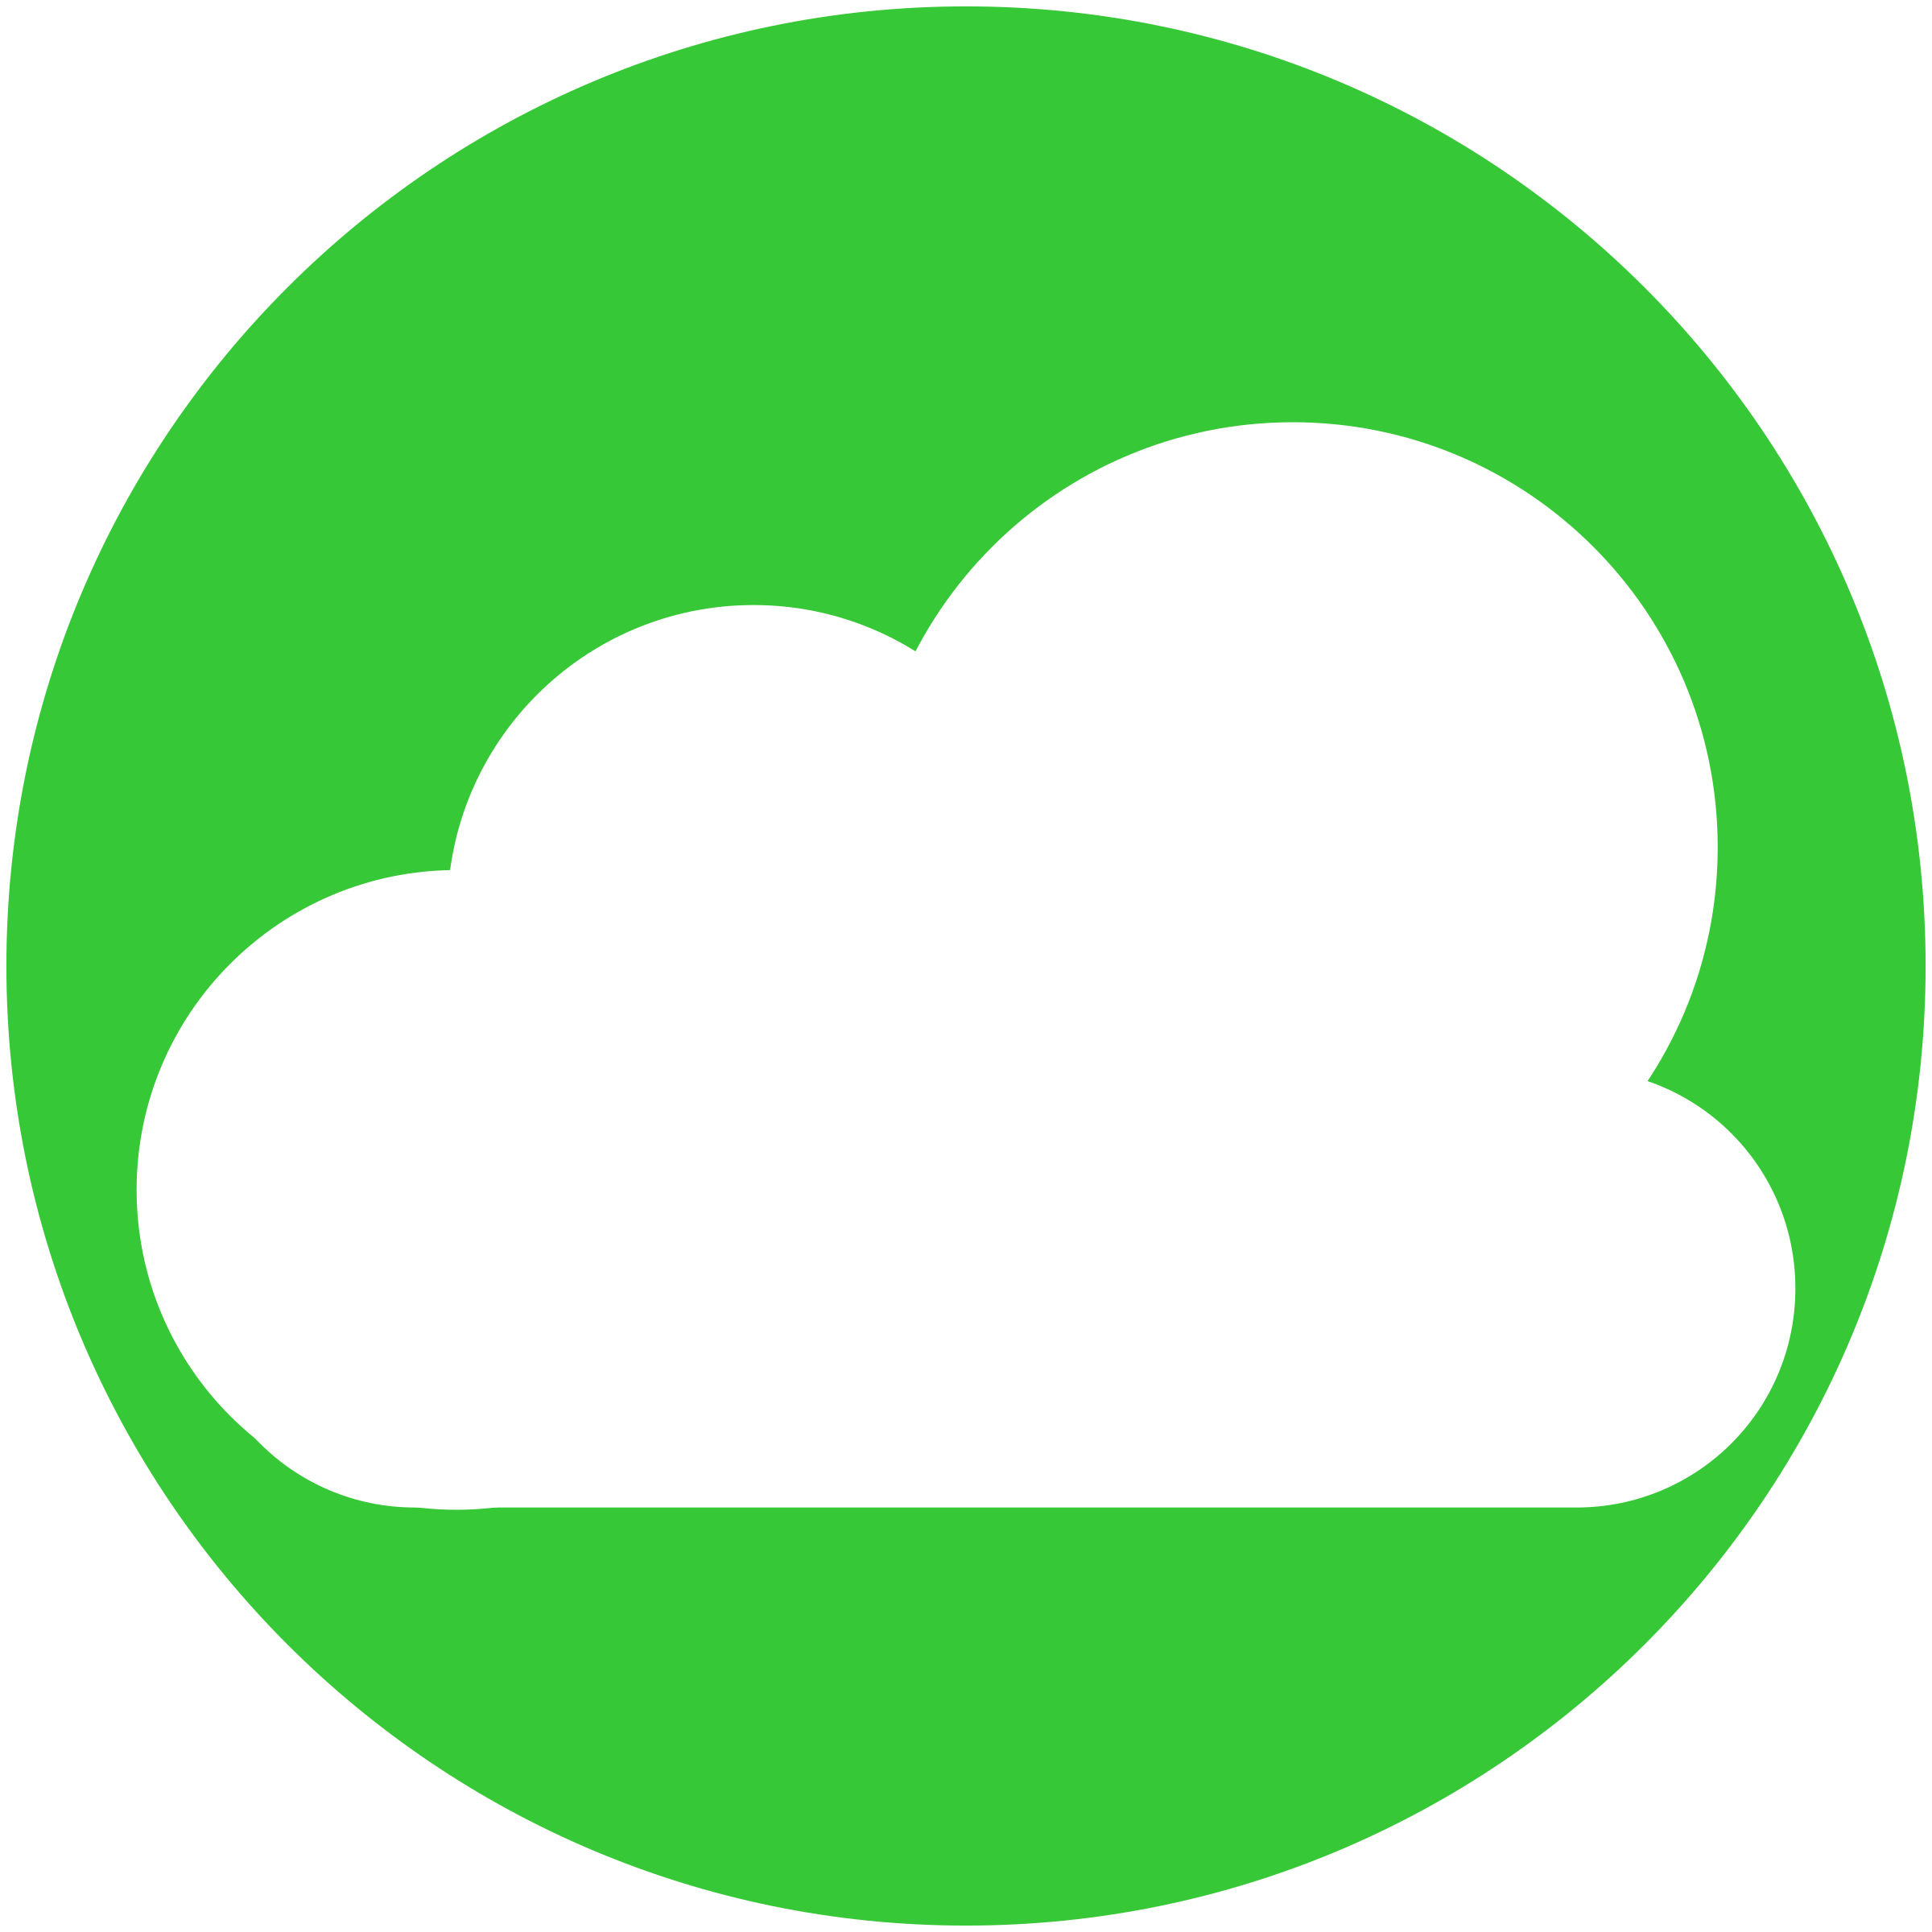 Clouds clipart green Clipart Cloud Icon Icon Cloud